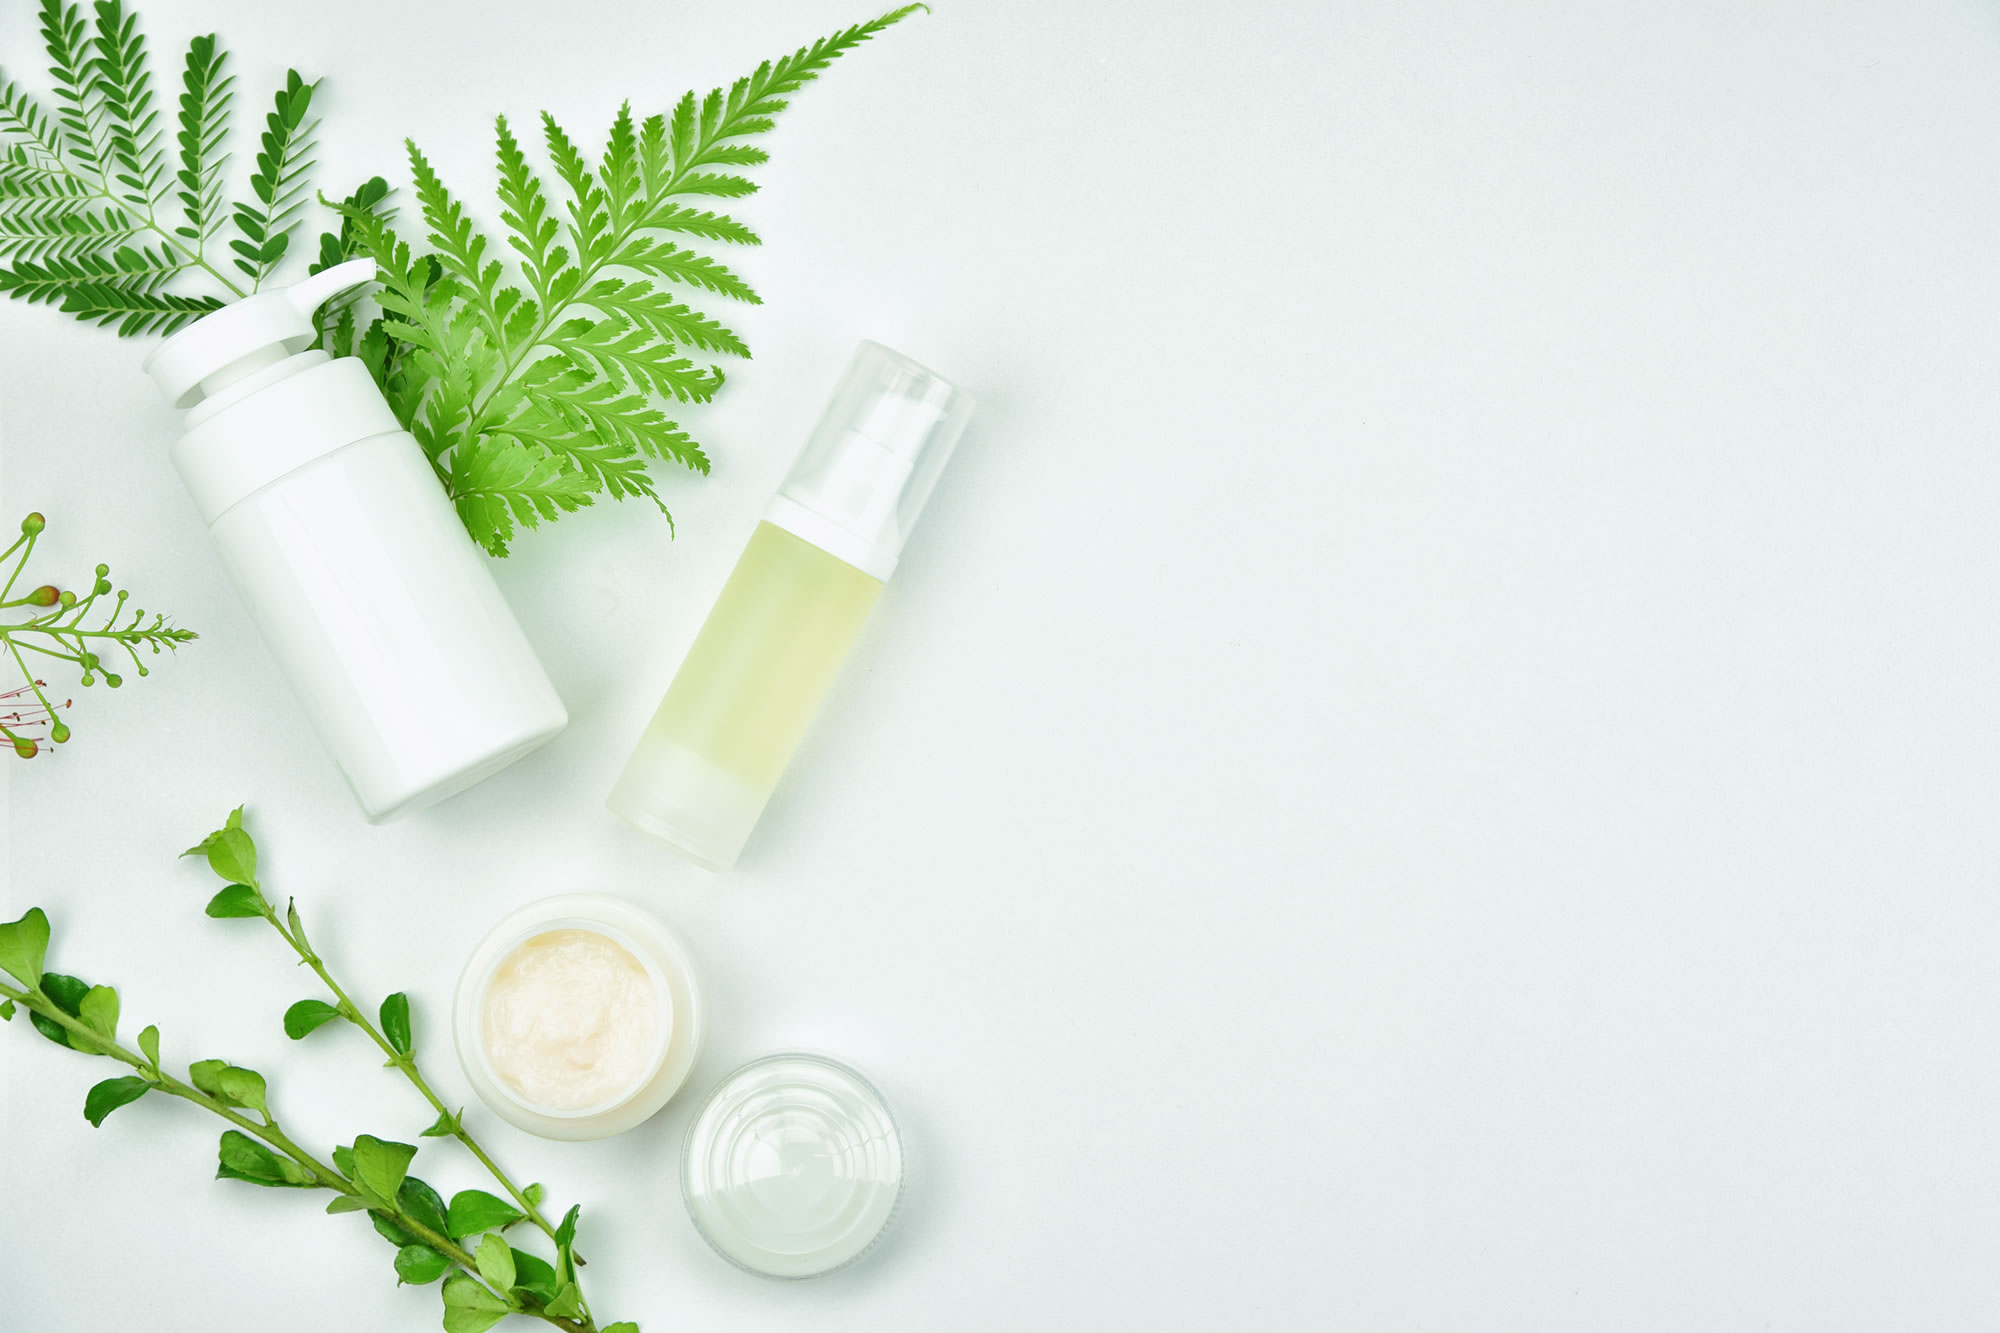 Smoothing the path to Organic Beauty